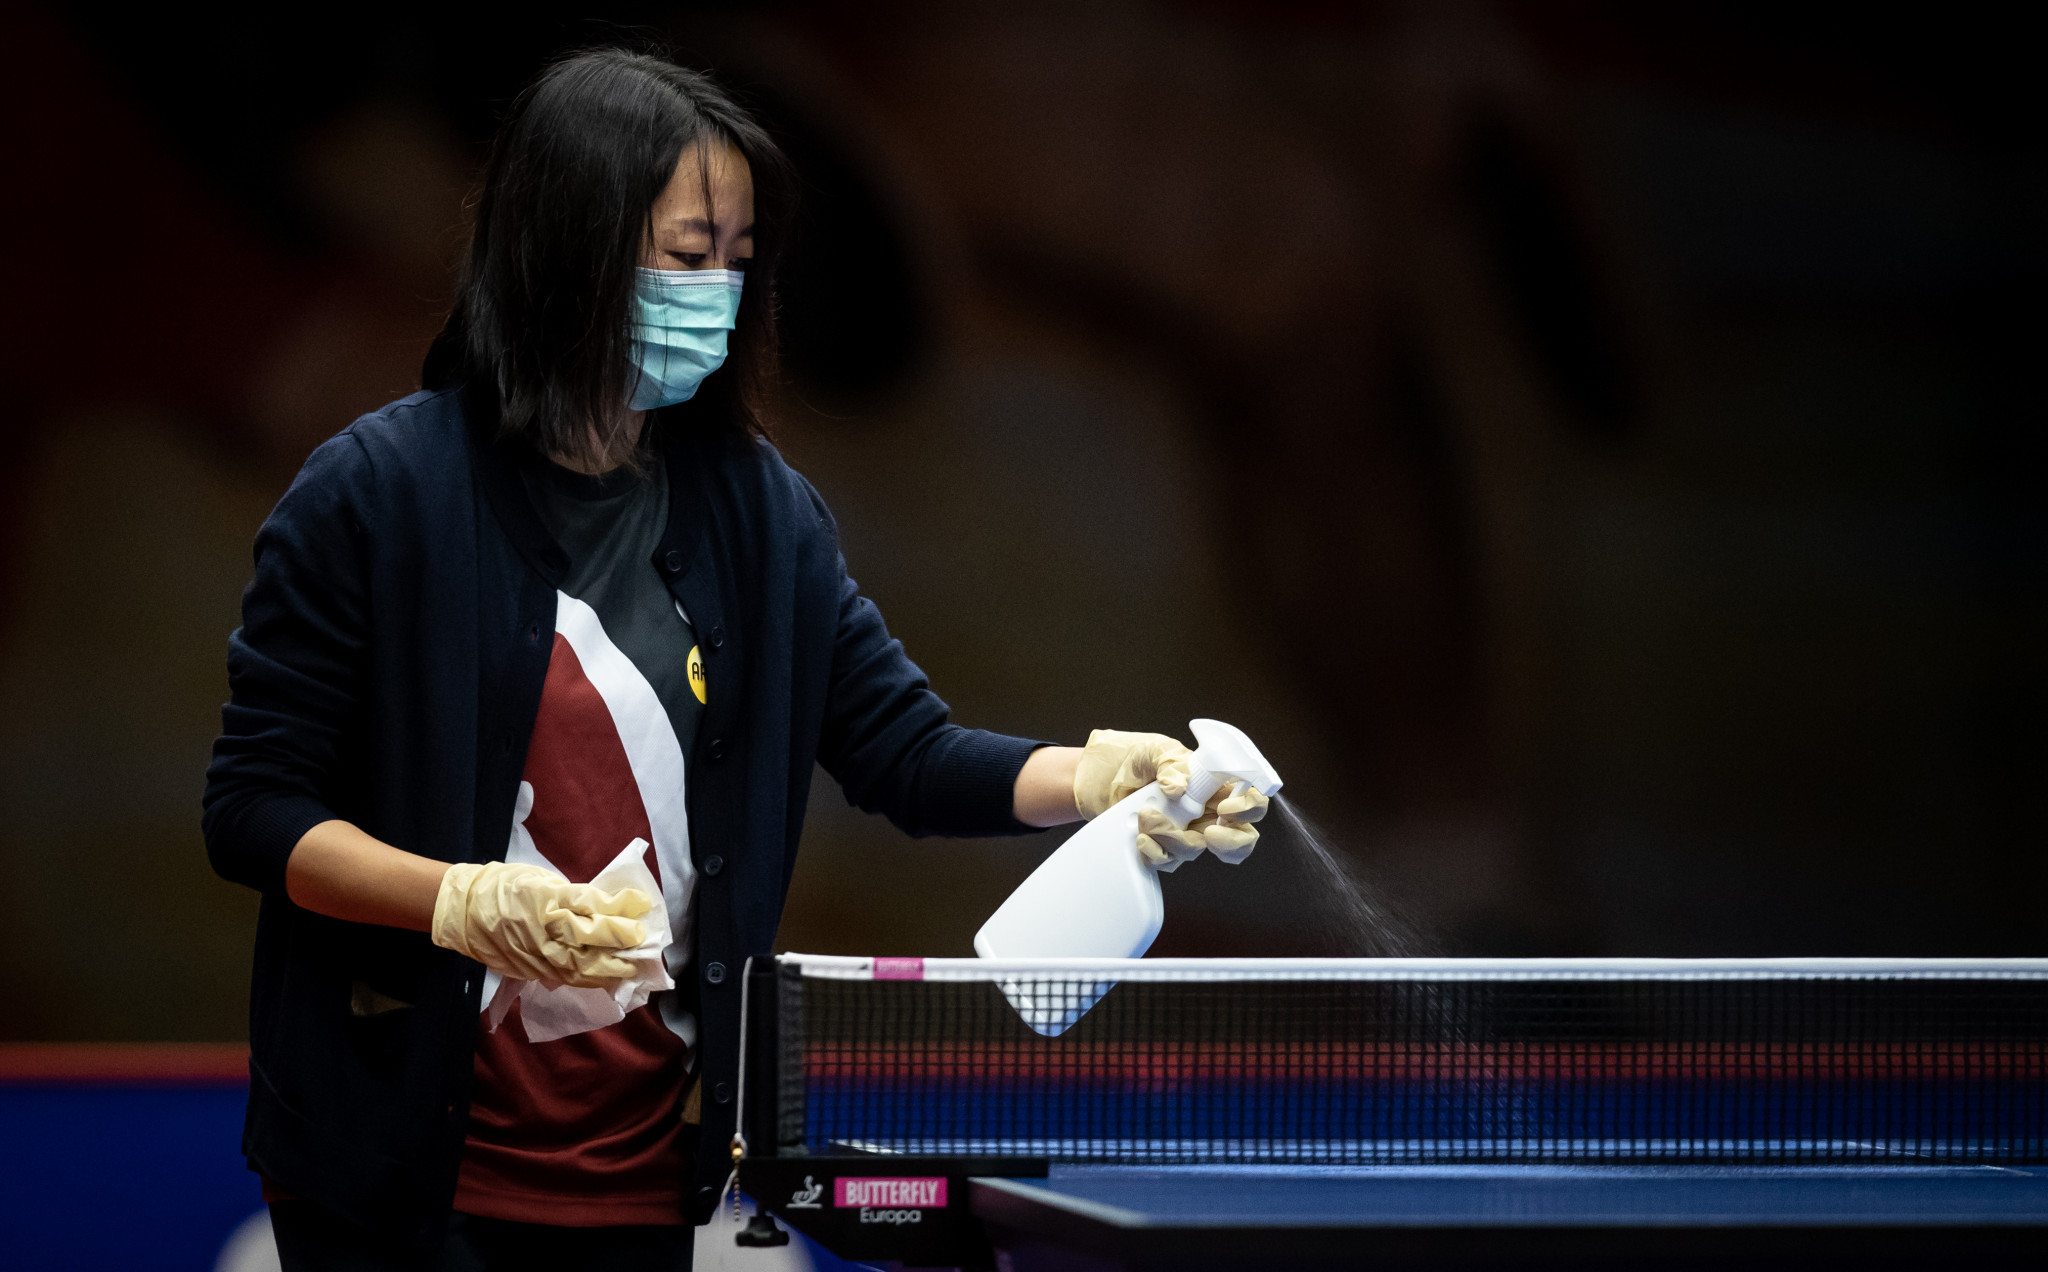 It is expected the ITTF Swedish International Open will take place with strict COVID-19 protocols in place ©Getty Images